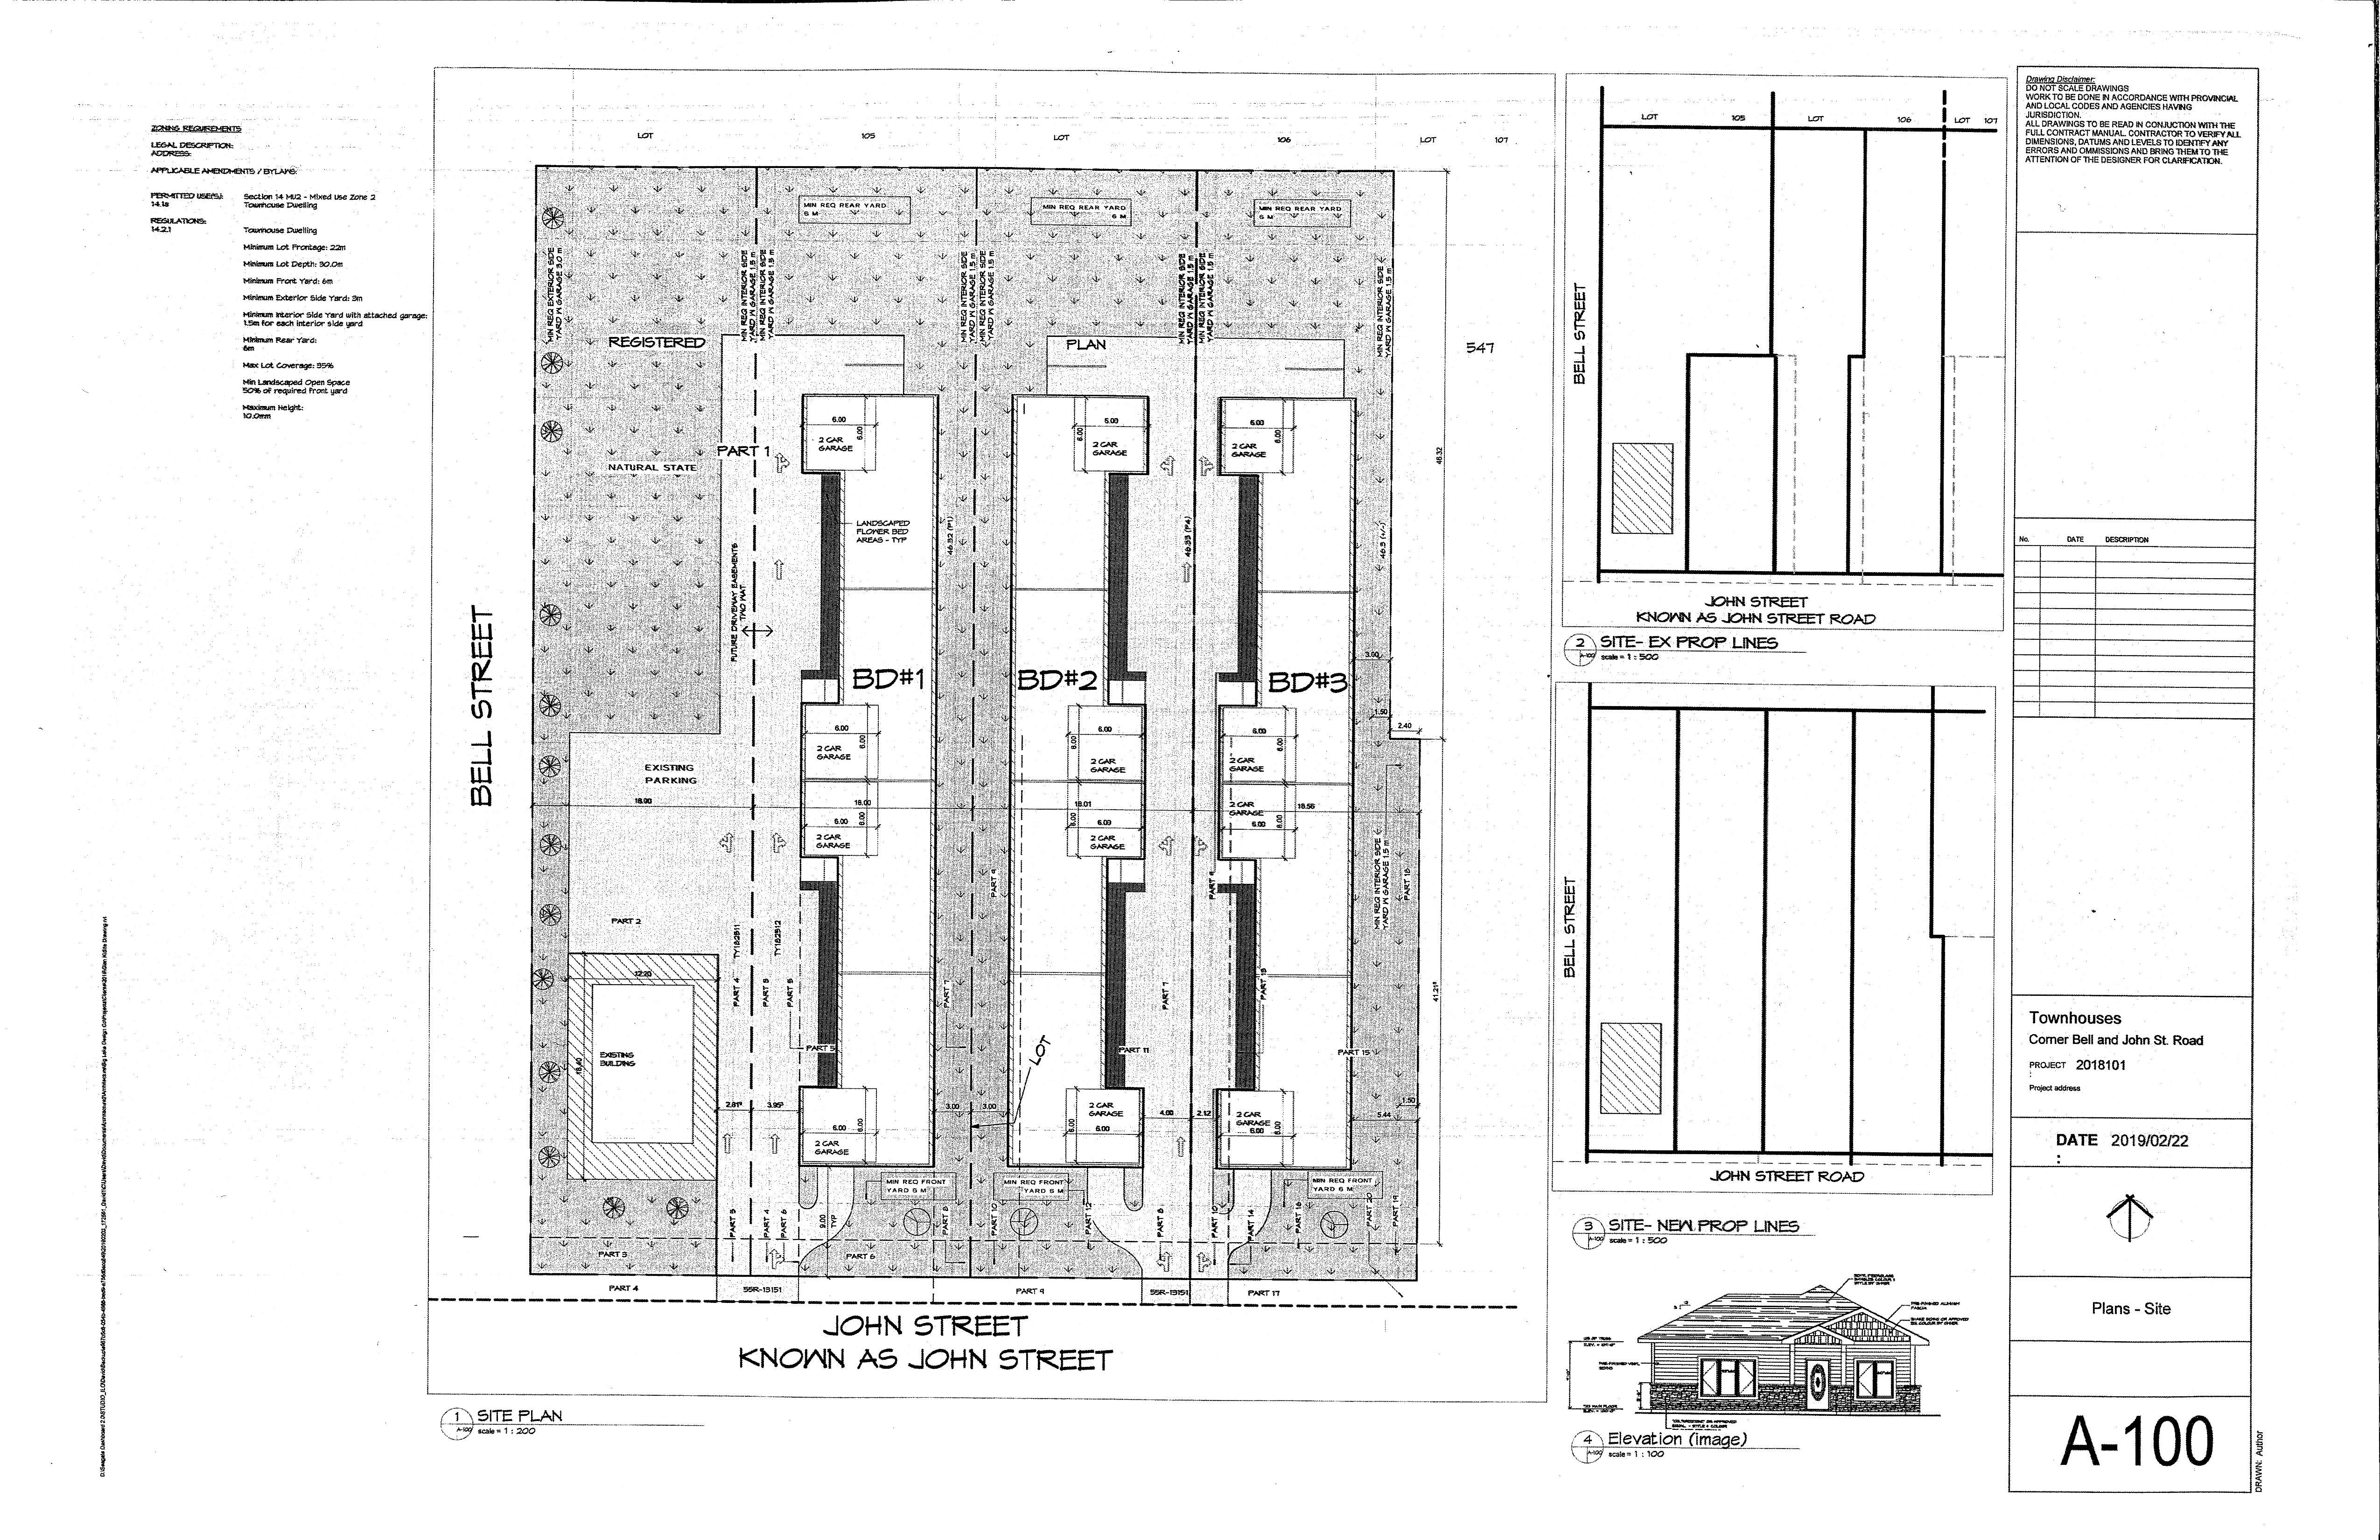 Applicant's Site Plan